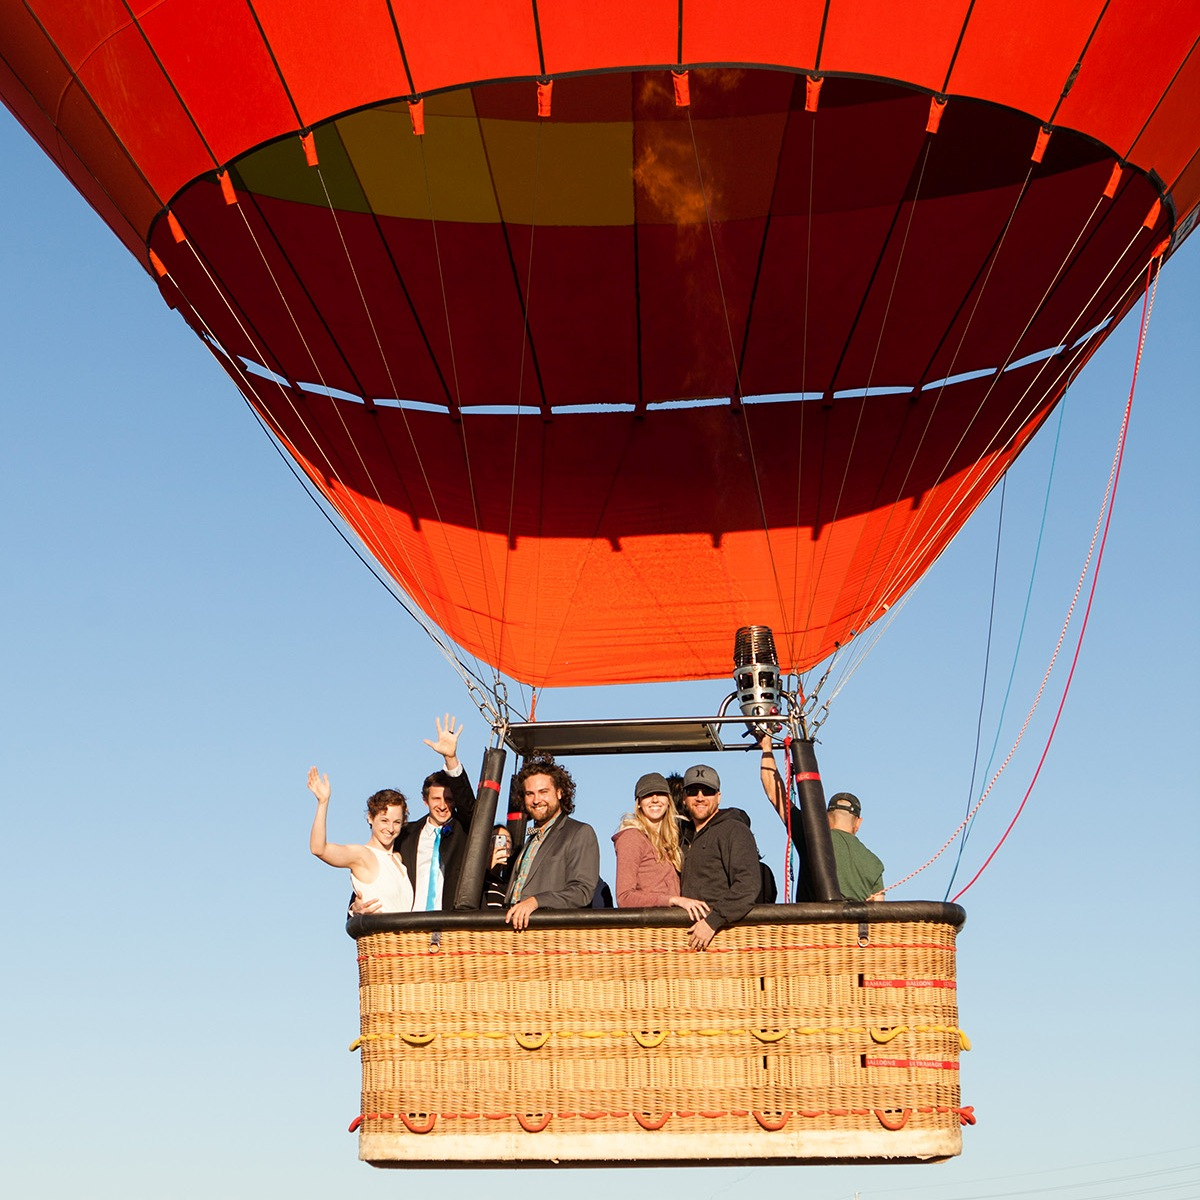 Float Balloon Tours 03 14 15 112 – Featured